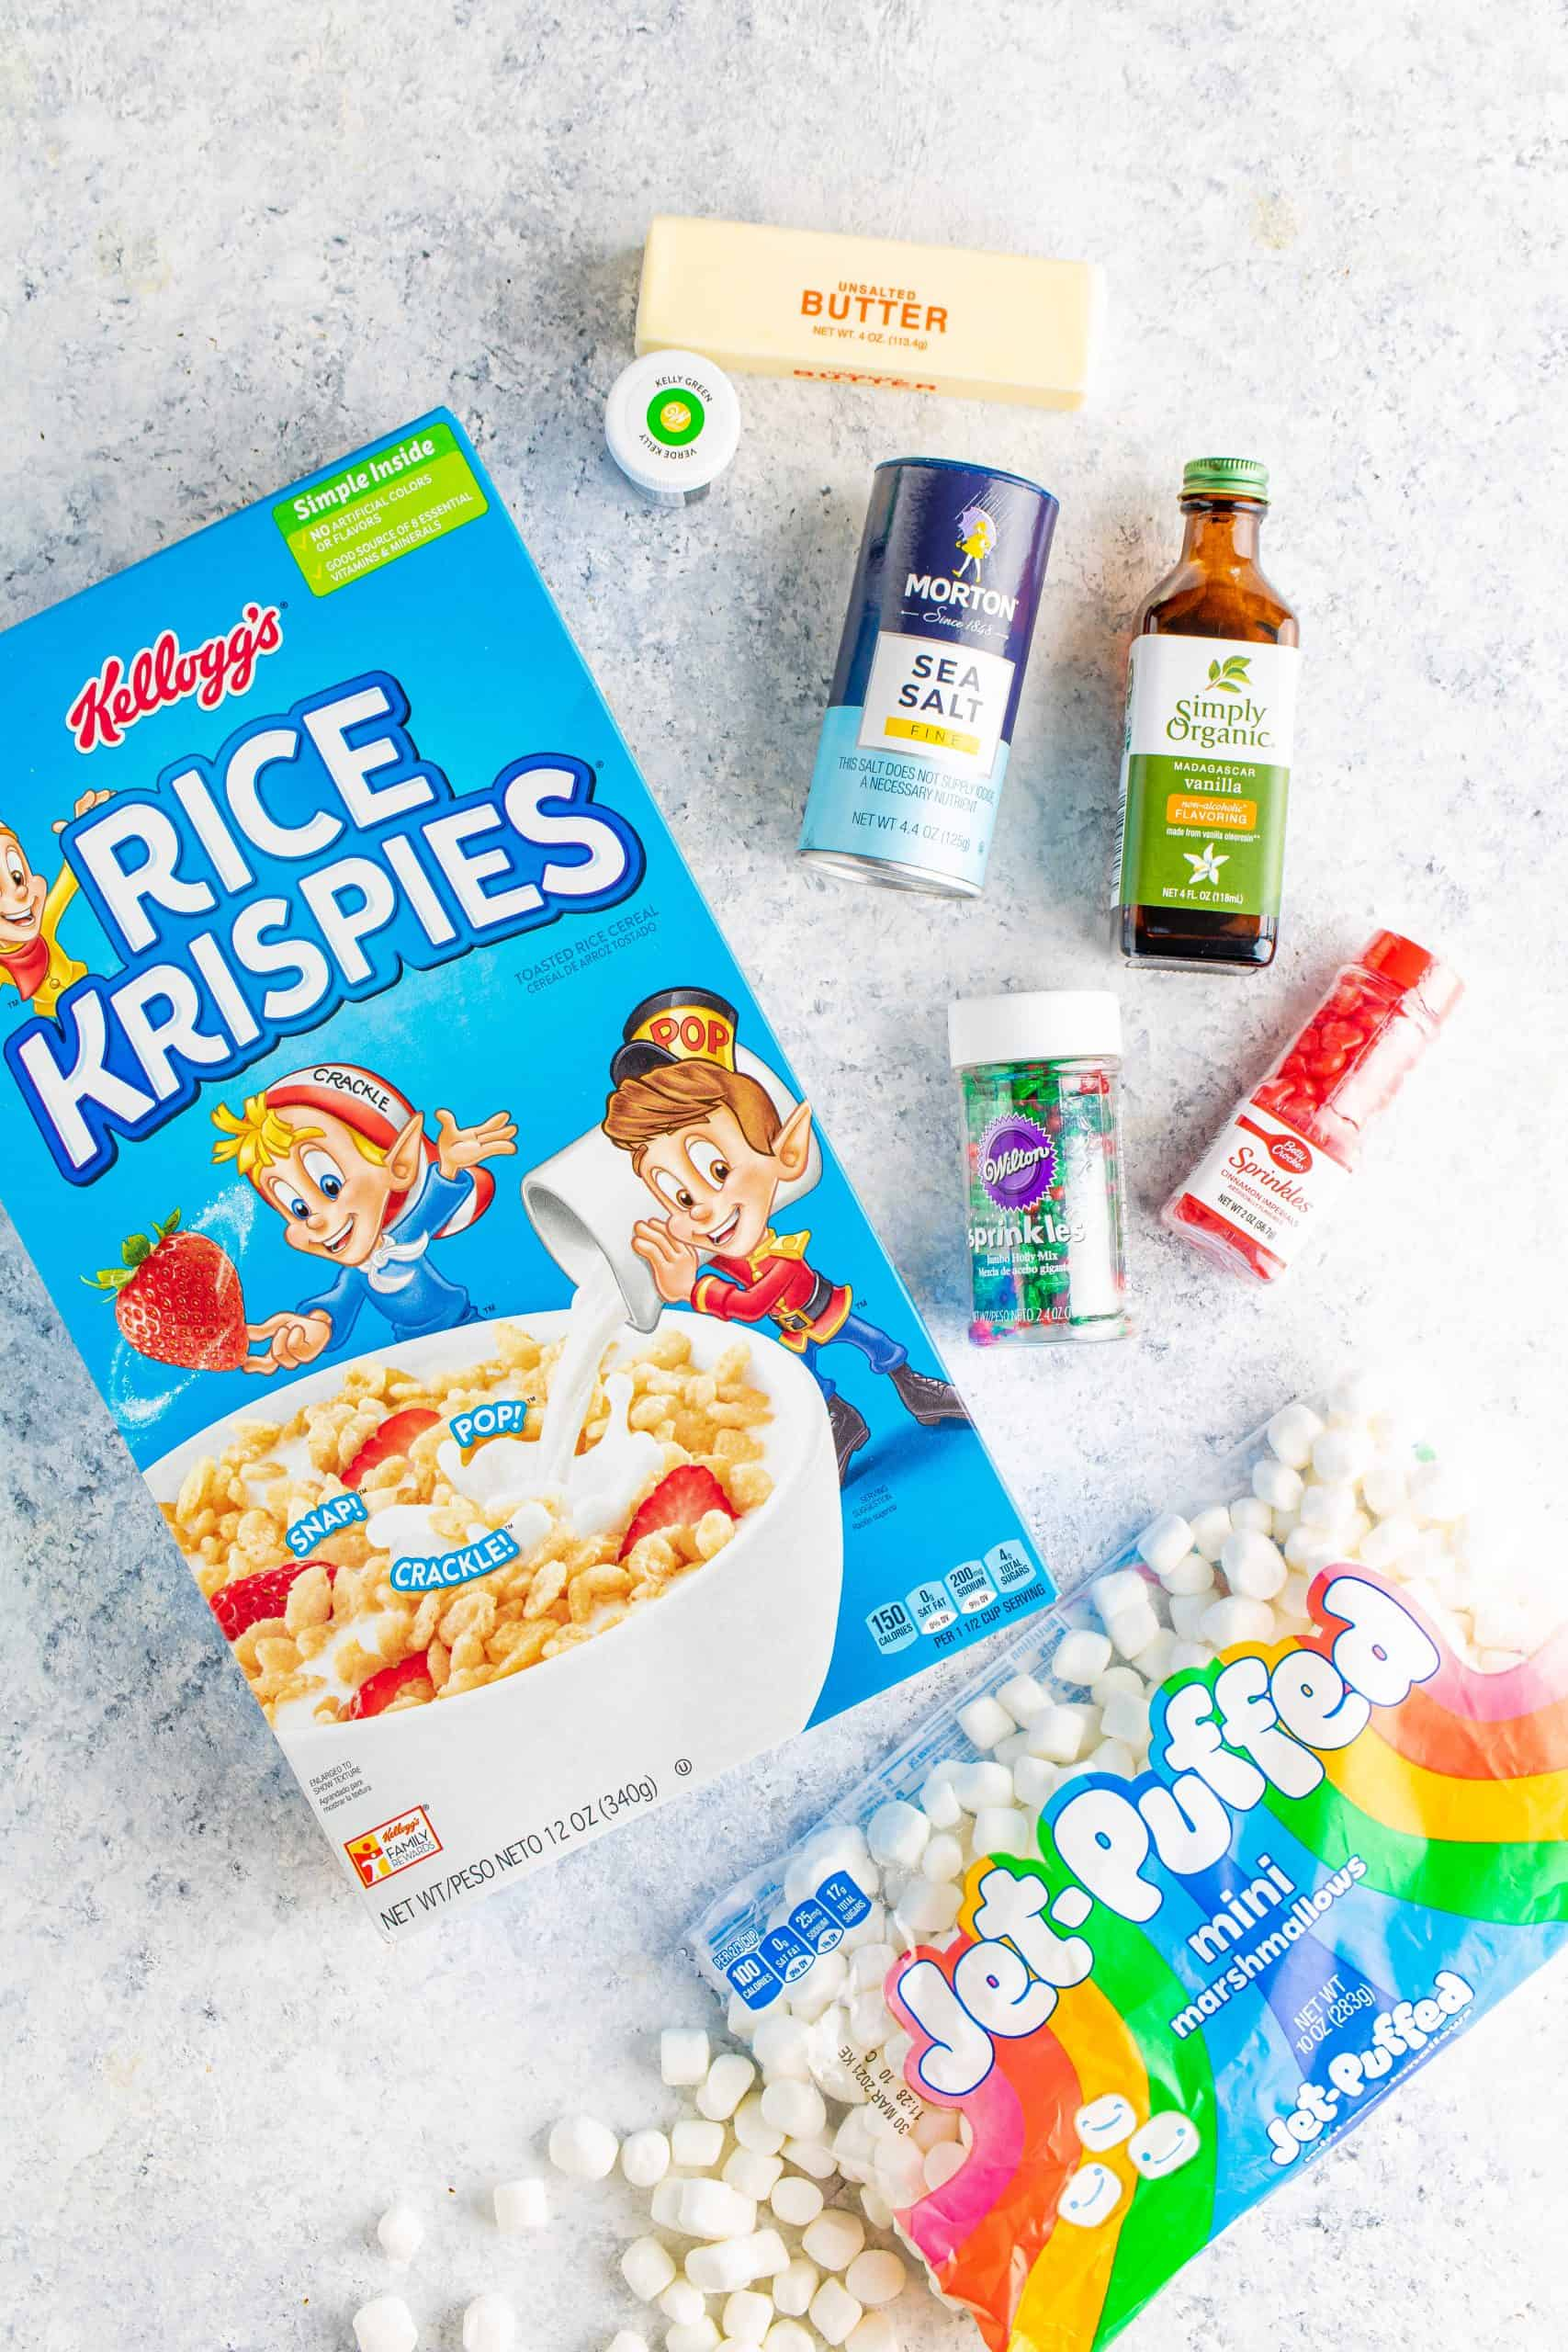 mini marshmallows, unsalted butter, vanilla extract, salt, green gel food coloring, Rice Krispies cereal, red hots cinnamon candies, sprinkles.